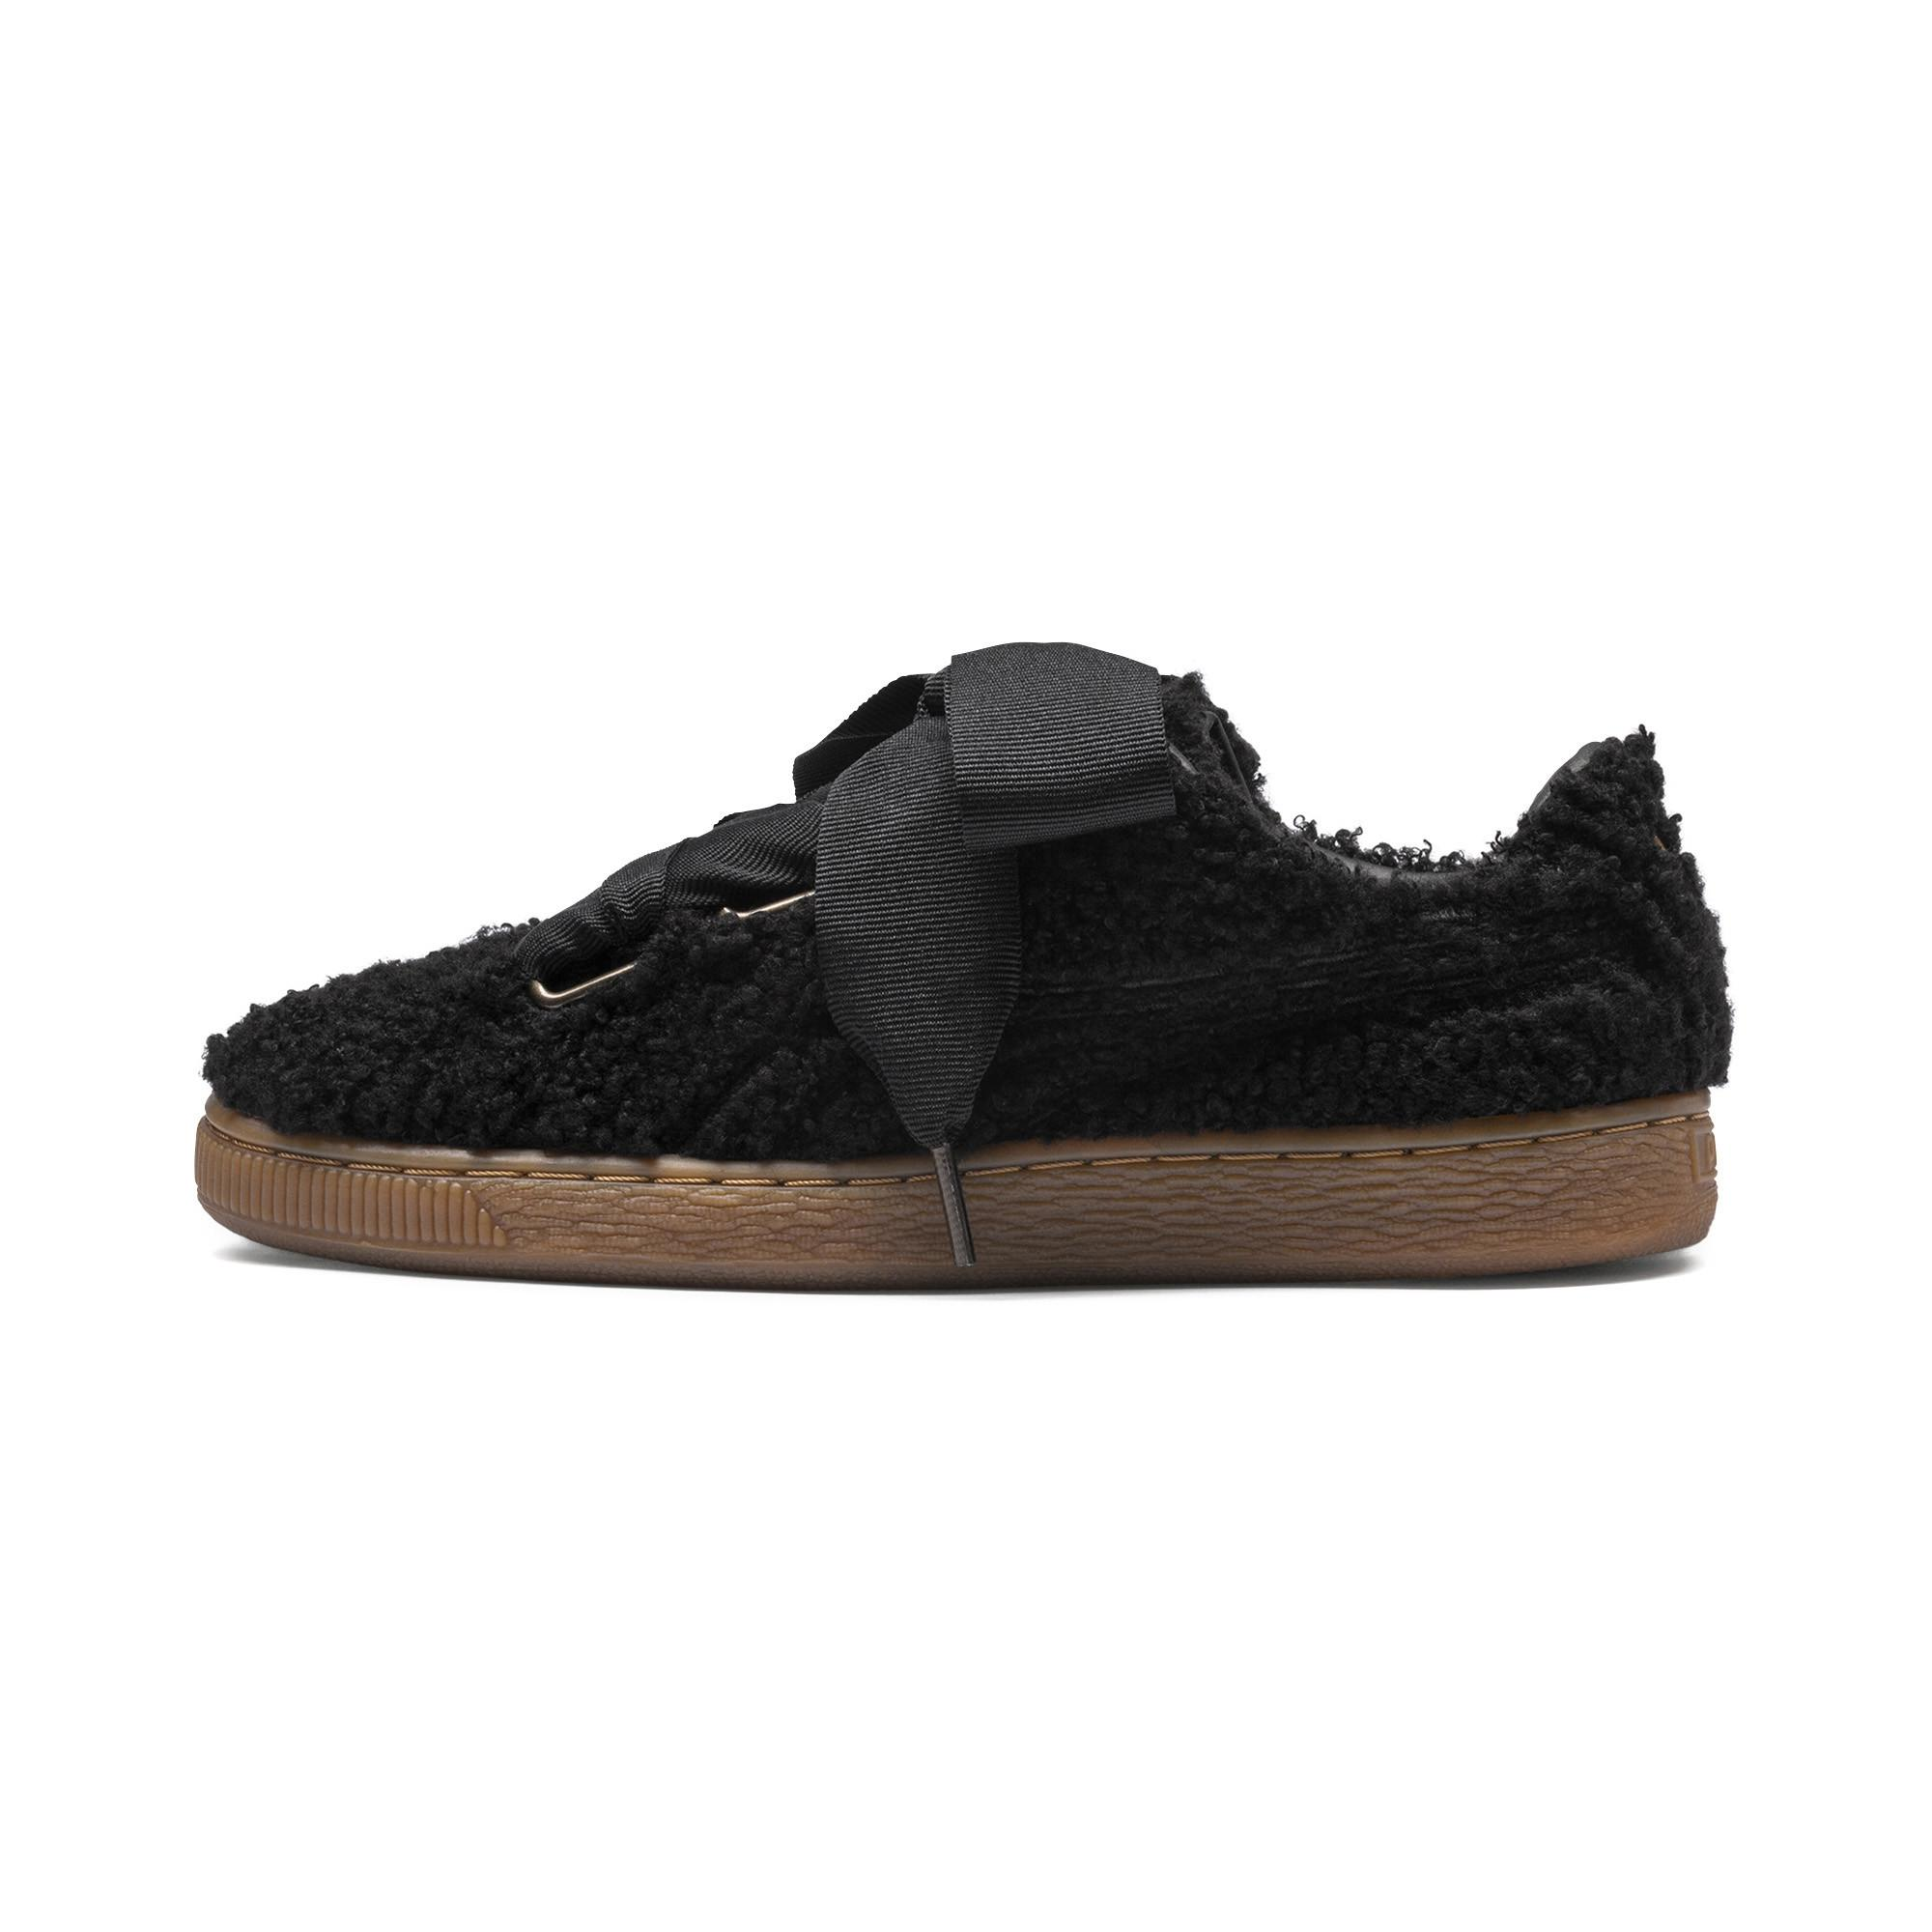 49c793c33d58 Lyst - PUMA Basket Heart Teddy Women s Sneakers in Black - Save 45%